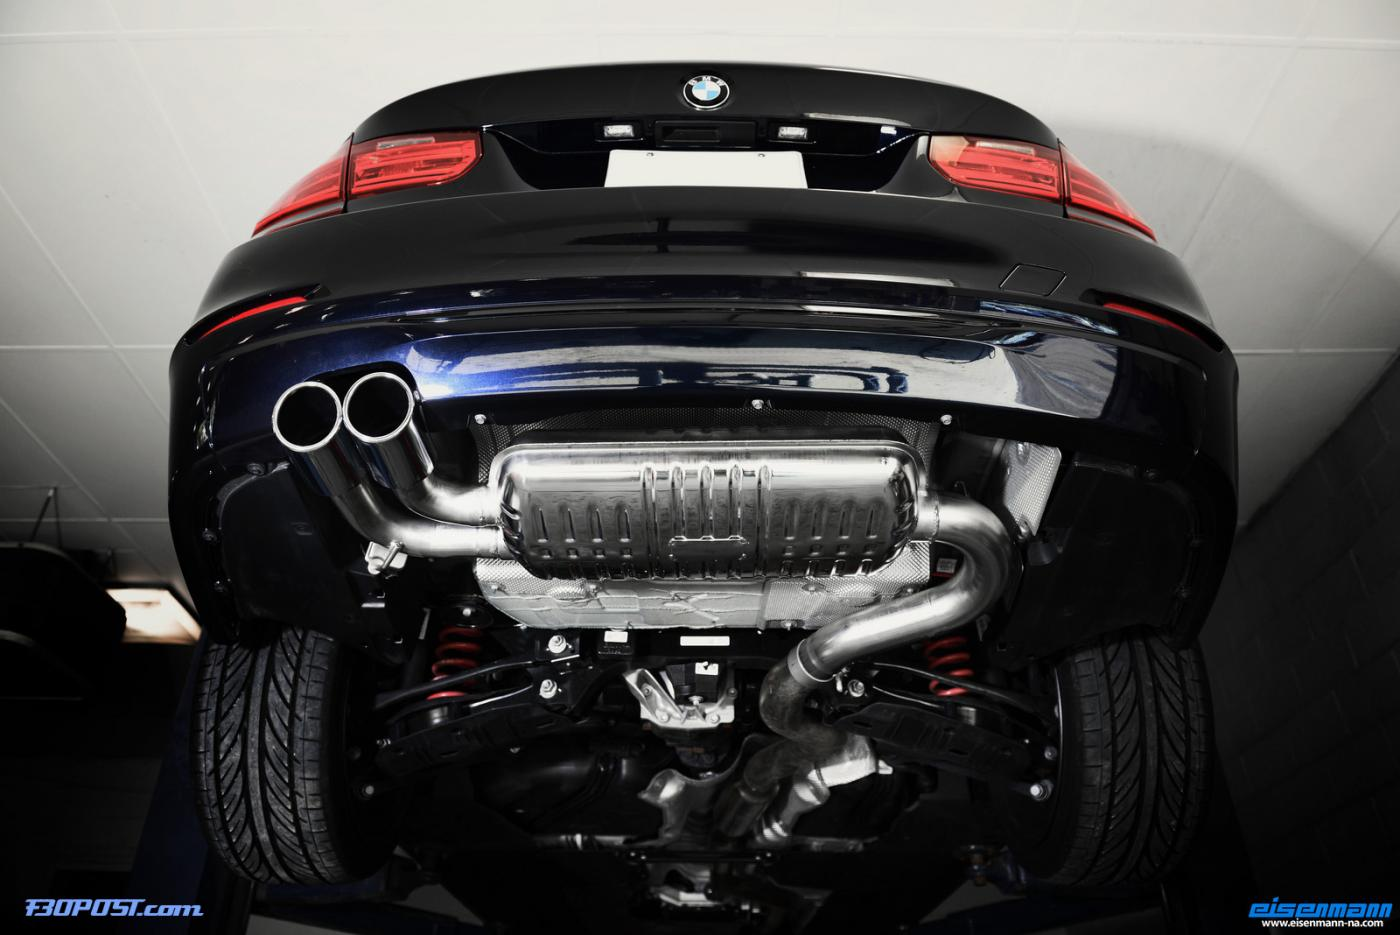 F30 328i Eisenmann Race Exhaust Installed Photos And Video